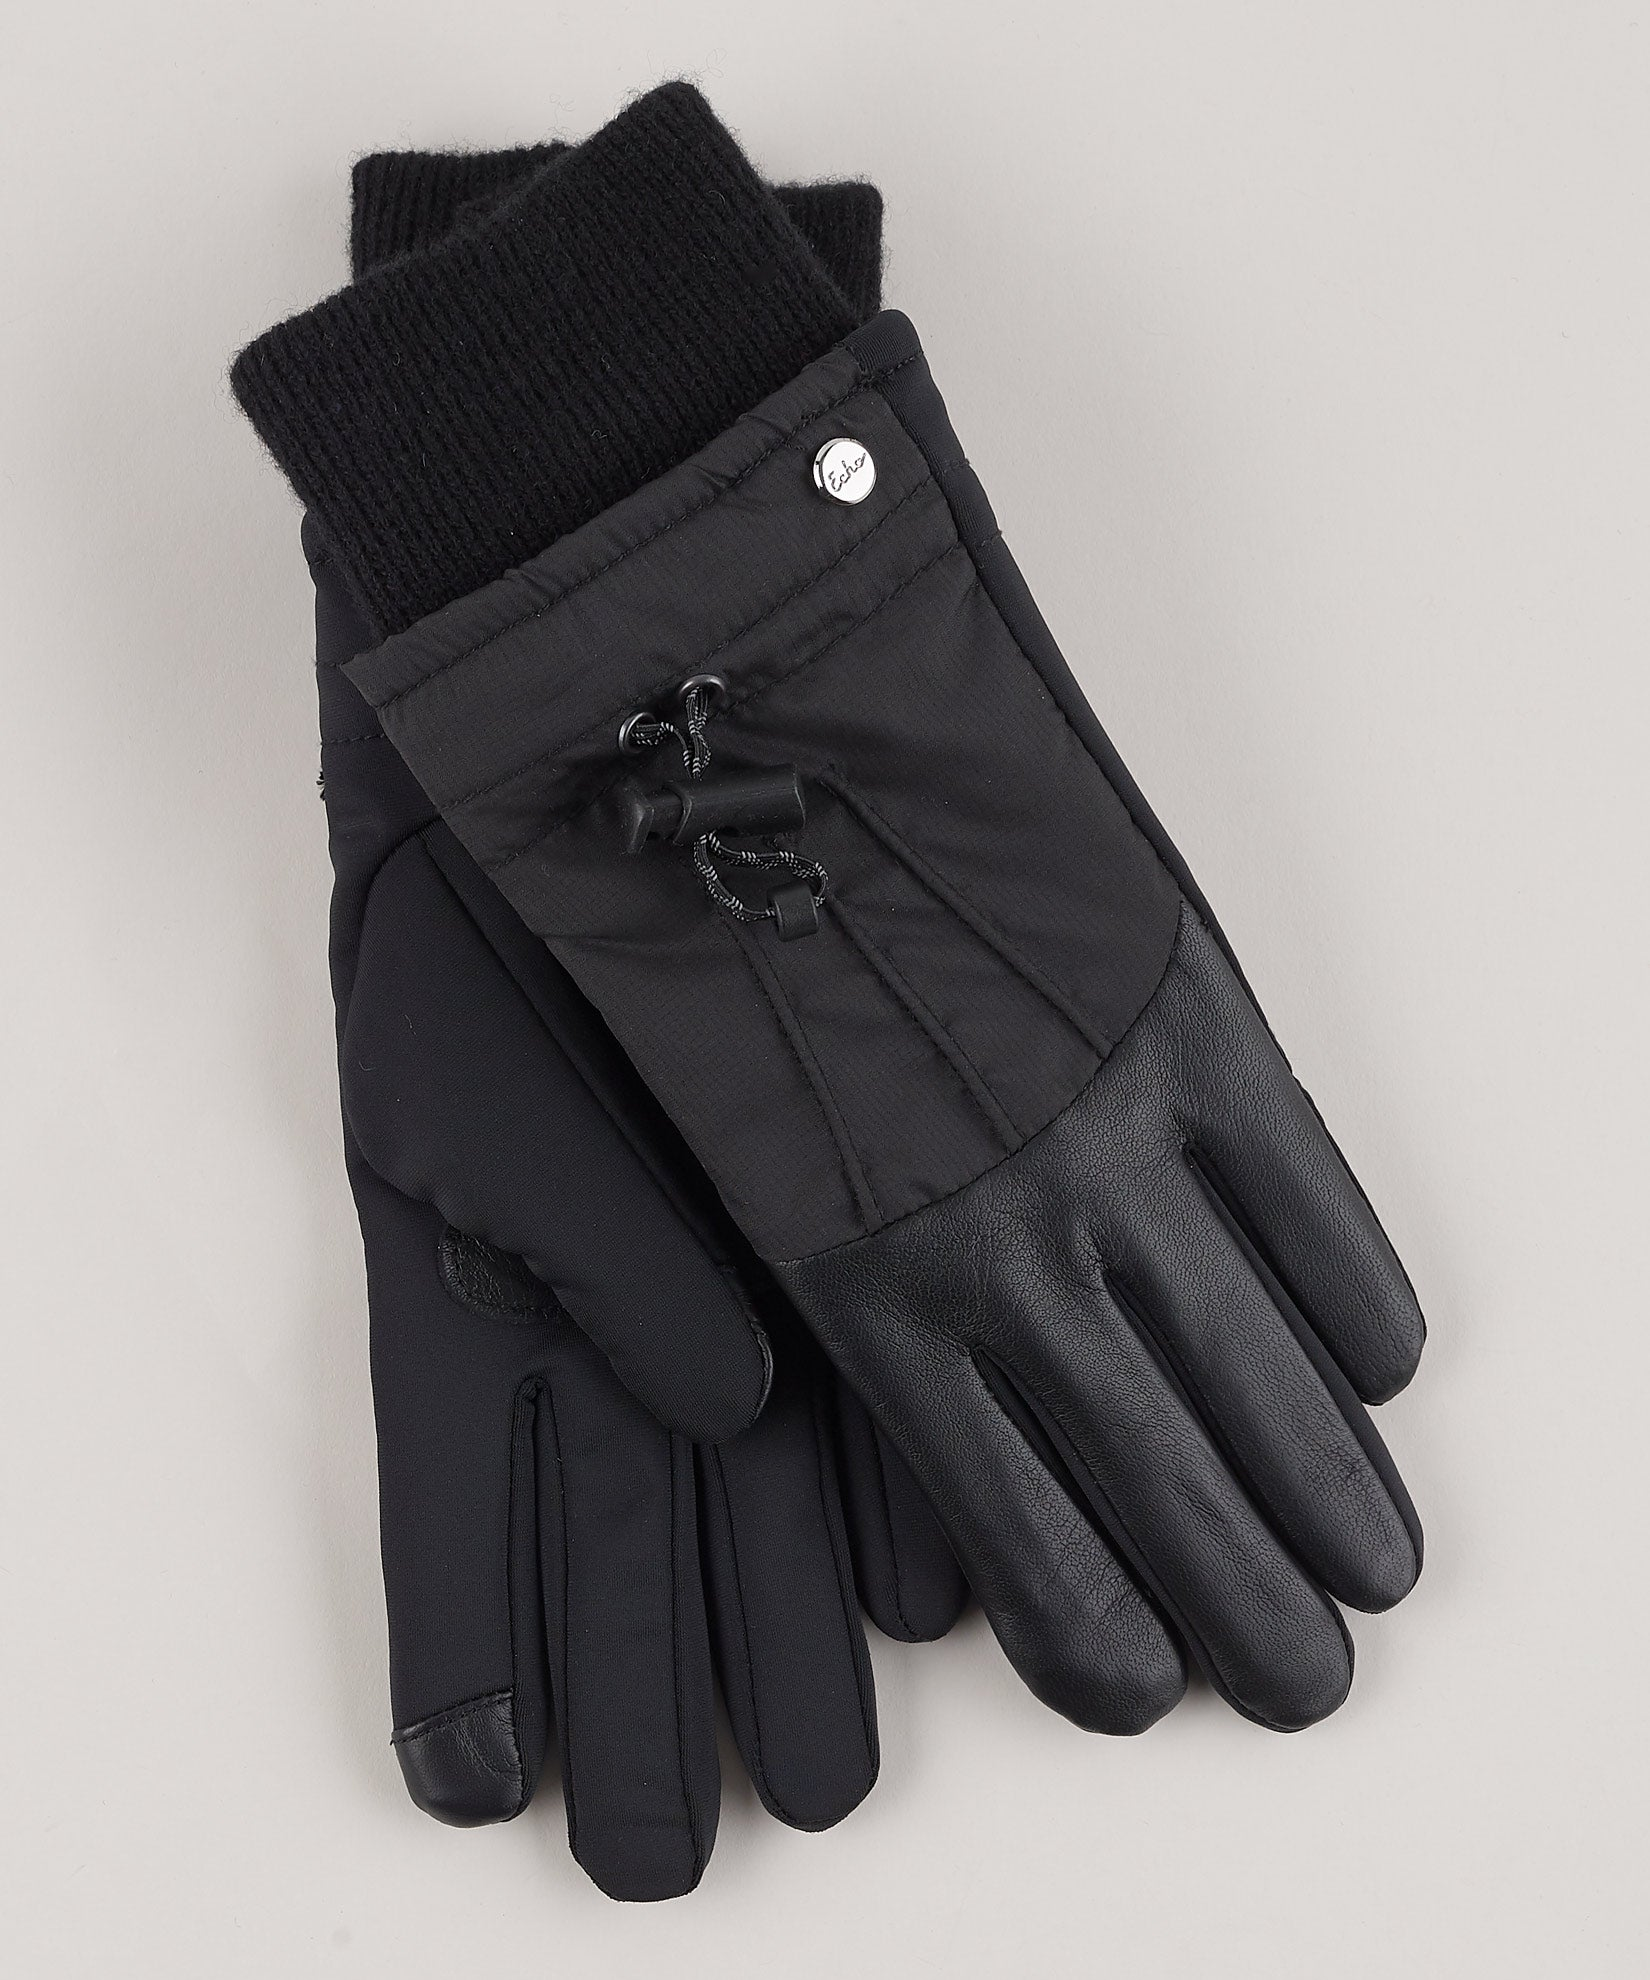 Black - Warmest Superfit Drawstring Glove